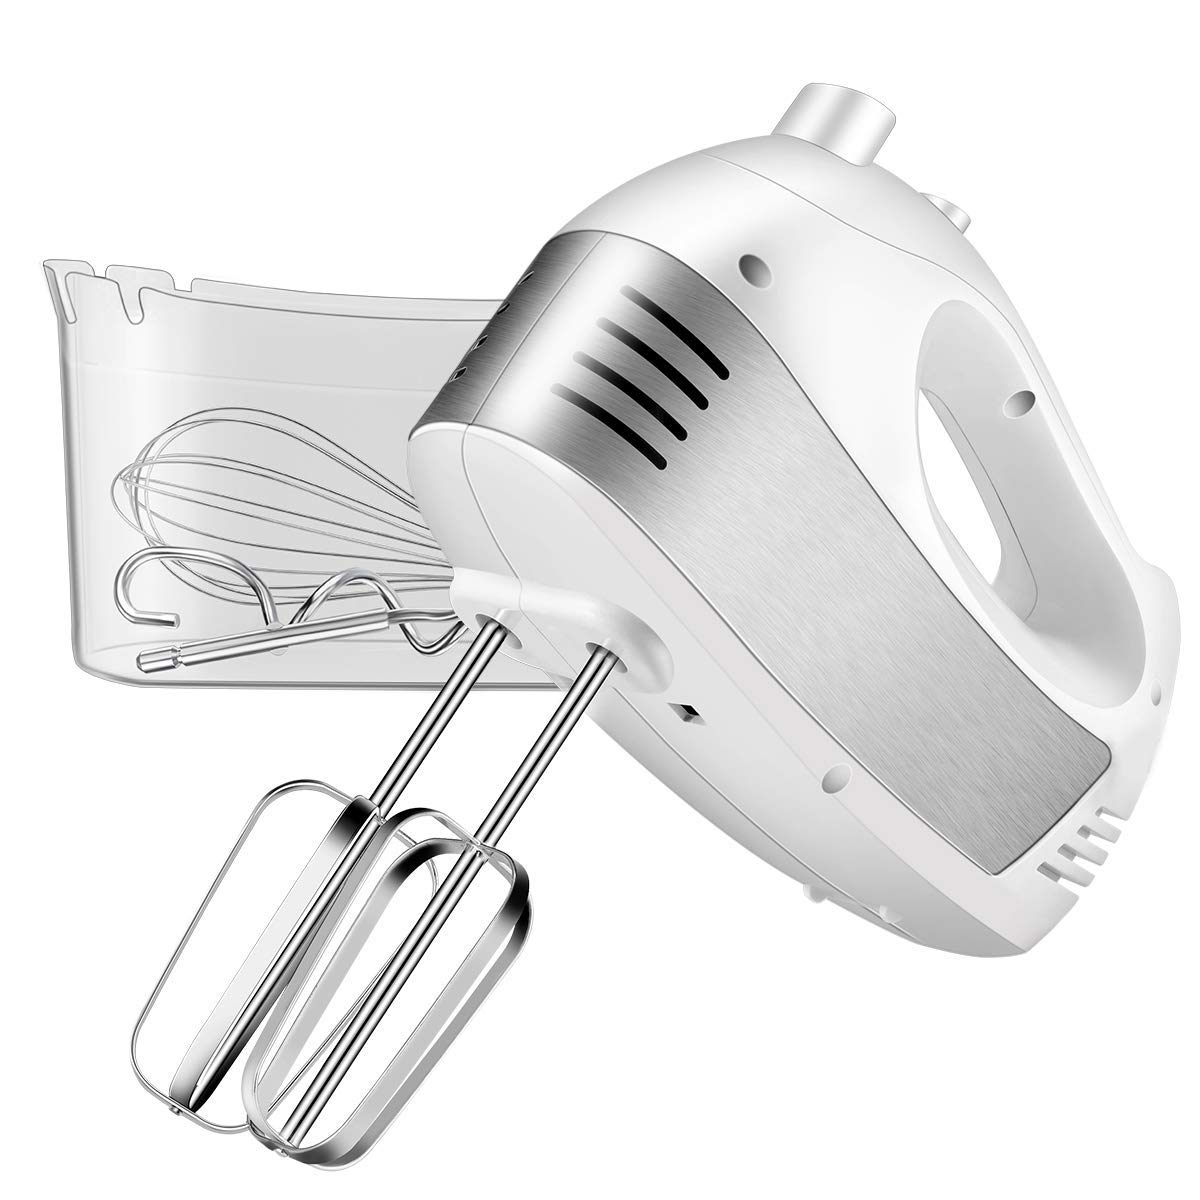 Hand Mixer Electric, Cusinaid 5-Speed Hand Mixer with Turbo Handheld Kitchen Mixer Includes Beaters, Dough Hooks and Storage Case (White) by CUSINAID